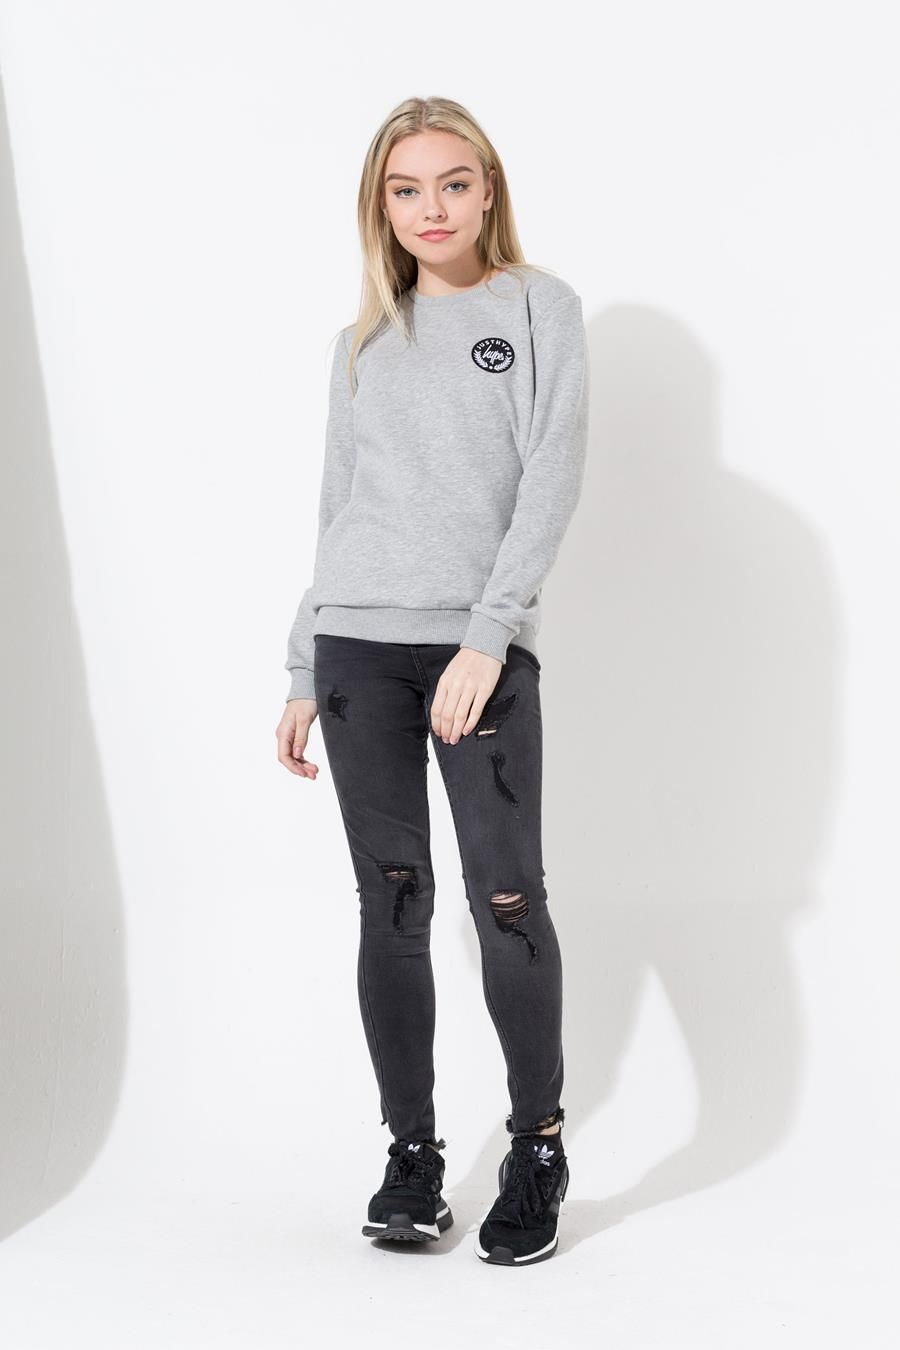 Hype Grey Crest Kids Crewneck